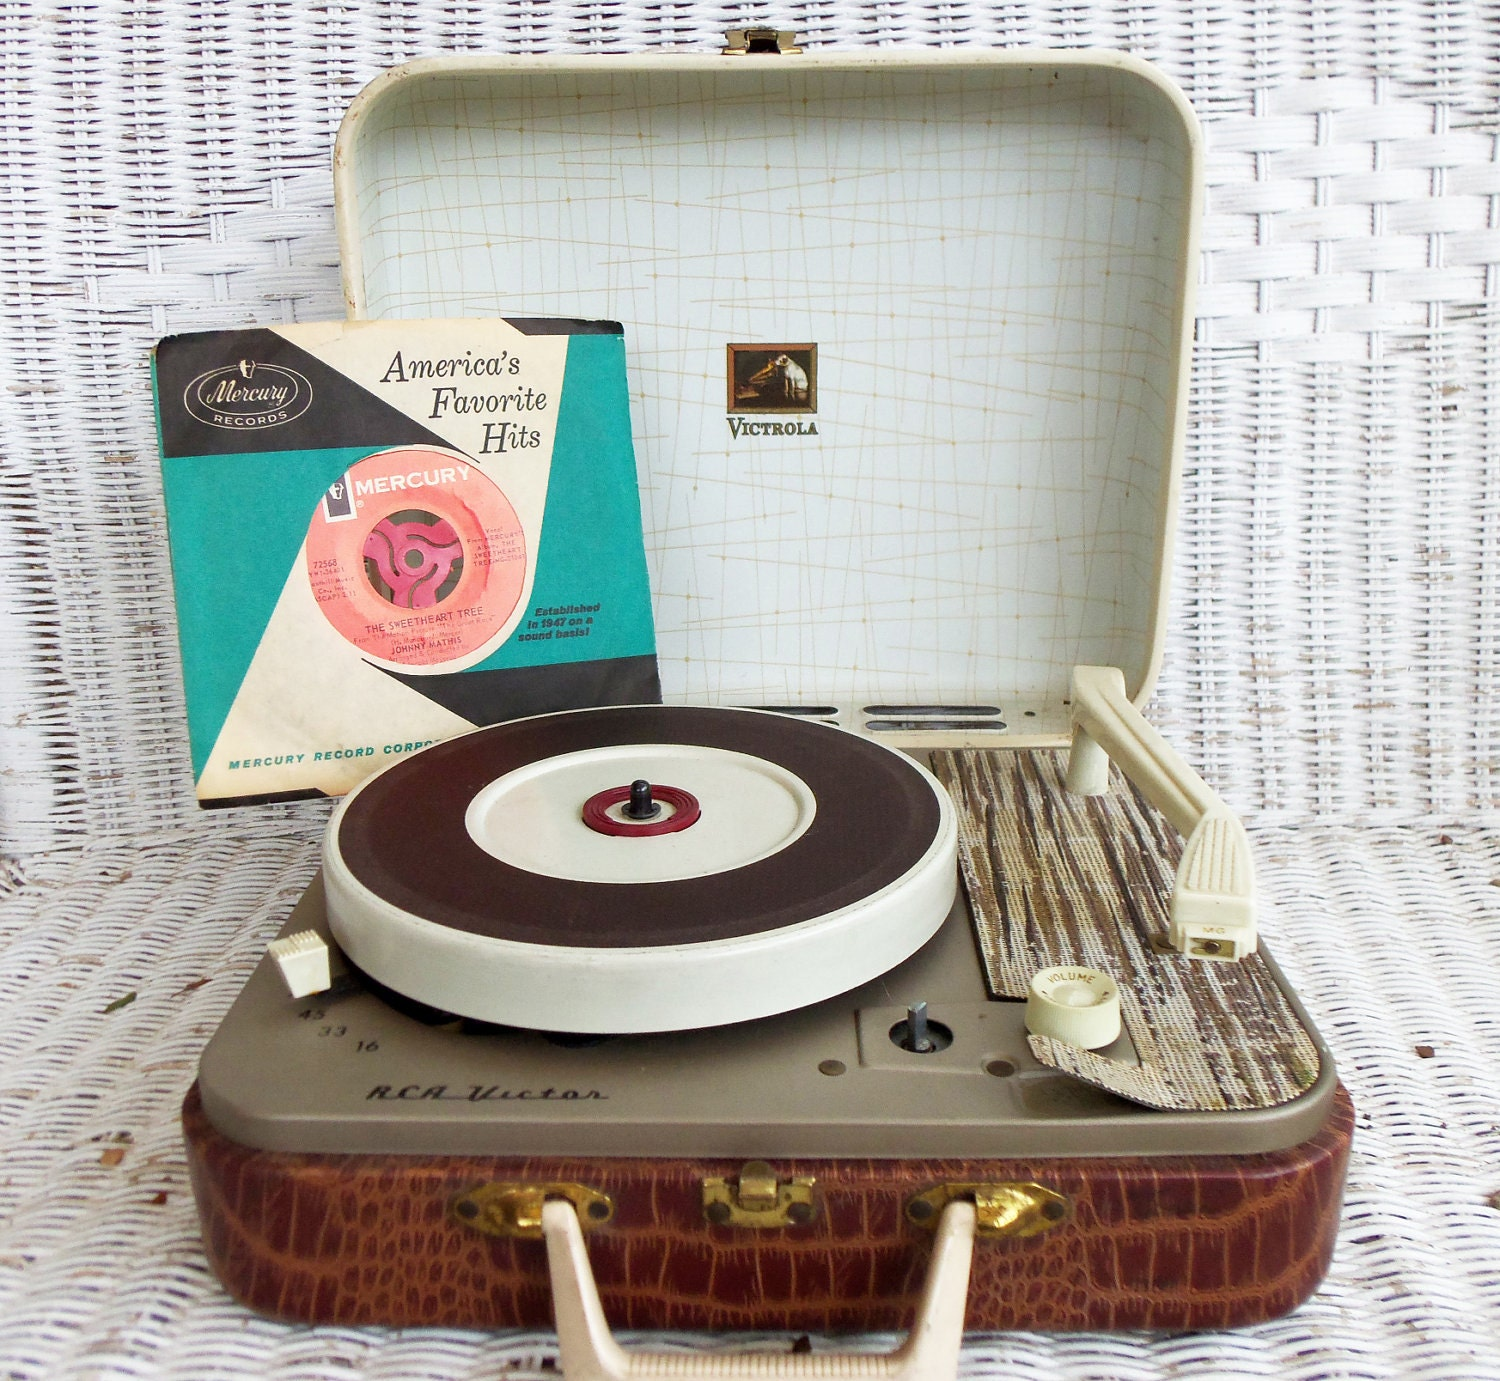 Portable Record Player As Seen On Shark Tank Portable Gas Stove Uk Portable Ssd X5 External Hard Drive Portable Vacuum Ace Hardware: RCA Victor Portable Record Player In Faux By Easystreetfishfry